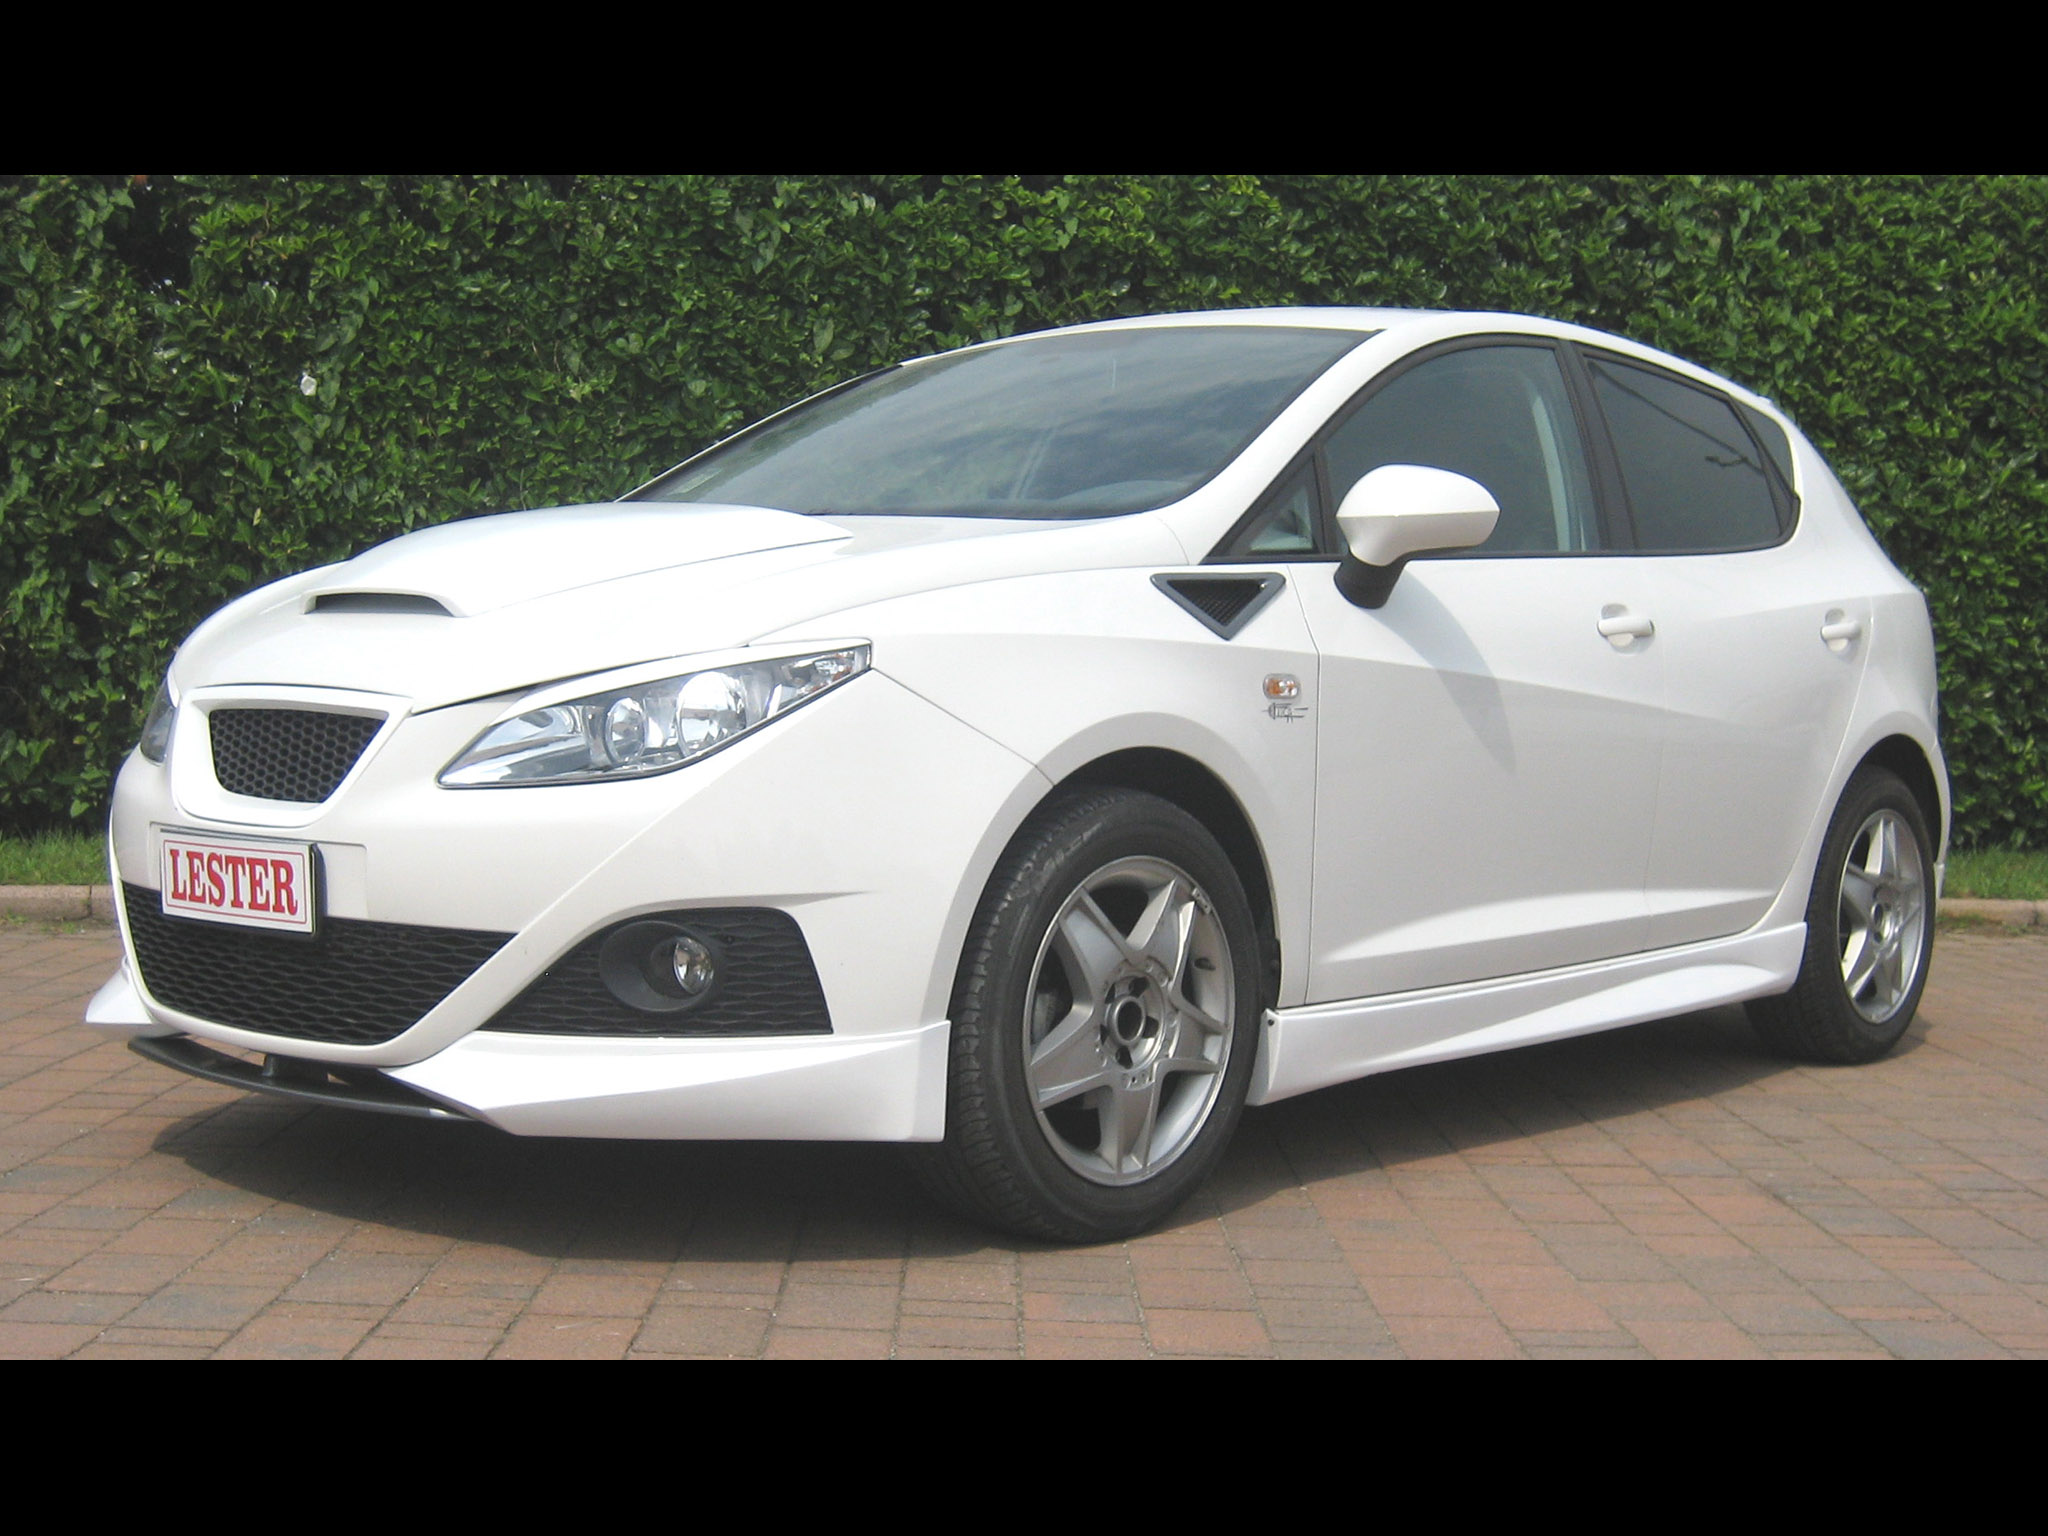 lester seat ibiza 6j 5 door 2010 lester seat ibiza 6j 5 door 2010 photo 6 car in pictures. Black Bedroom Furniture Sets. Home Design Ideas